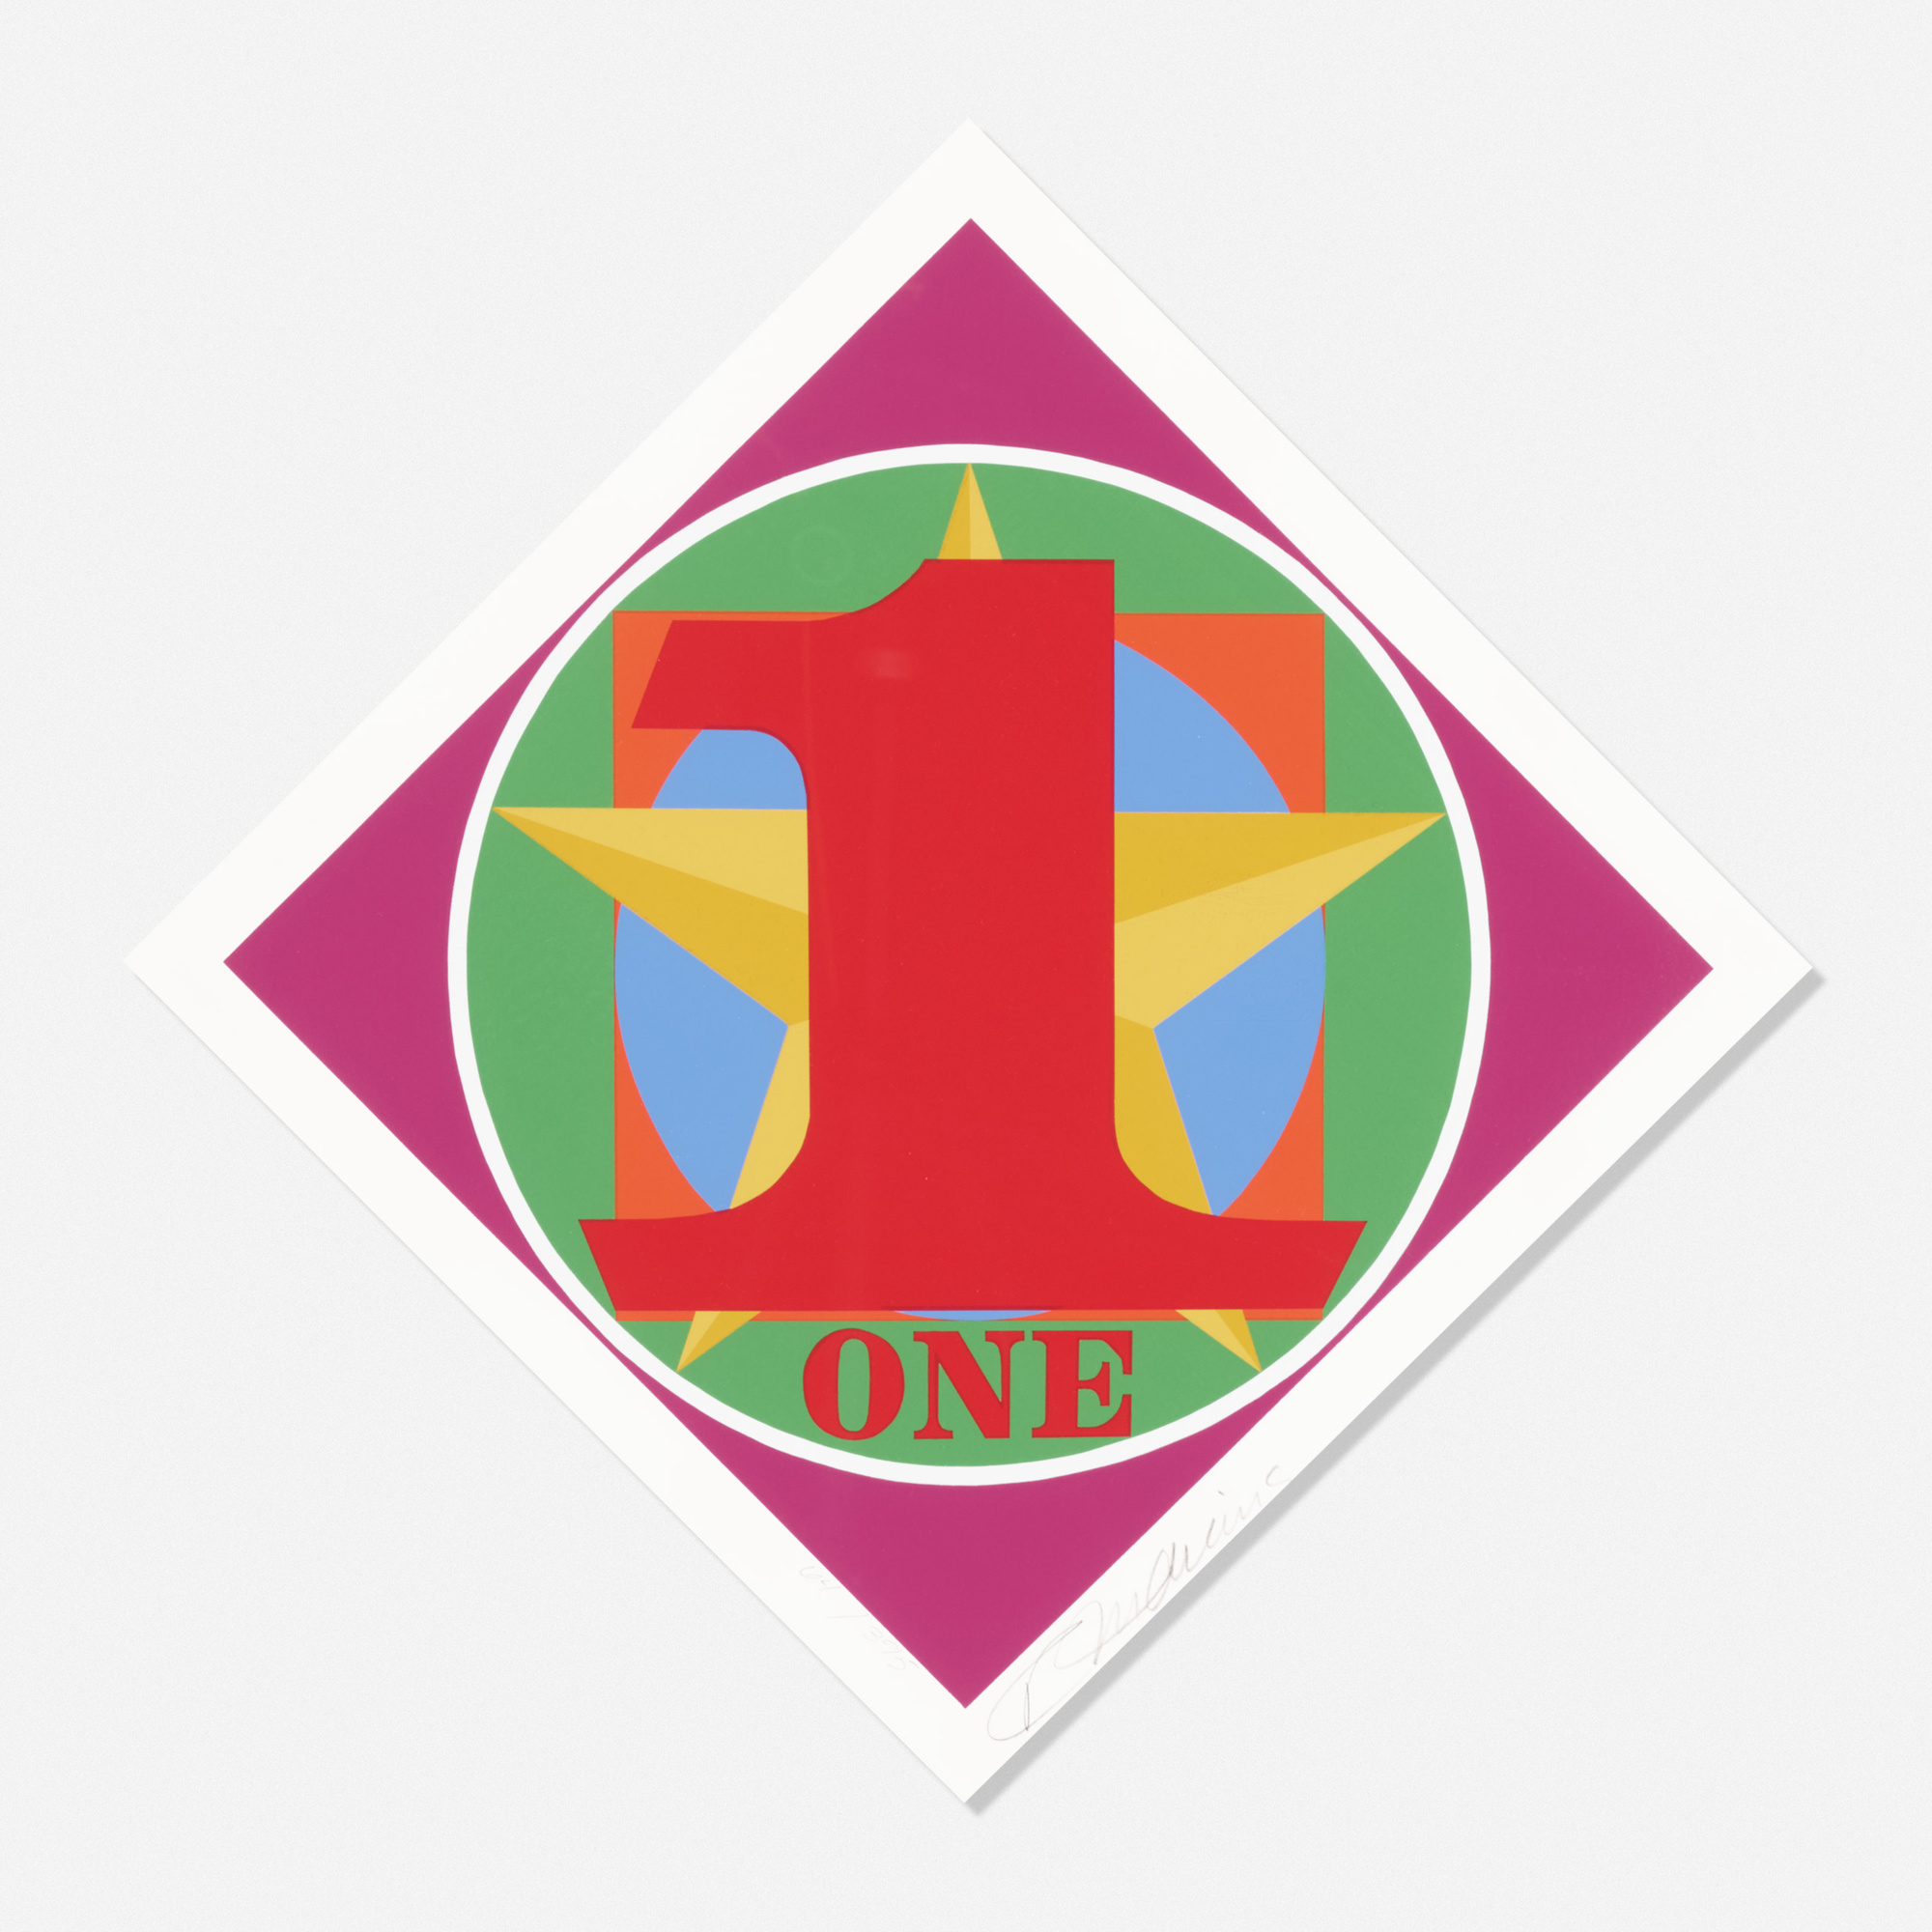 143: Robert Indiana / One (from the American Dream portfolio) (1 of 1)